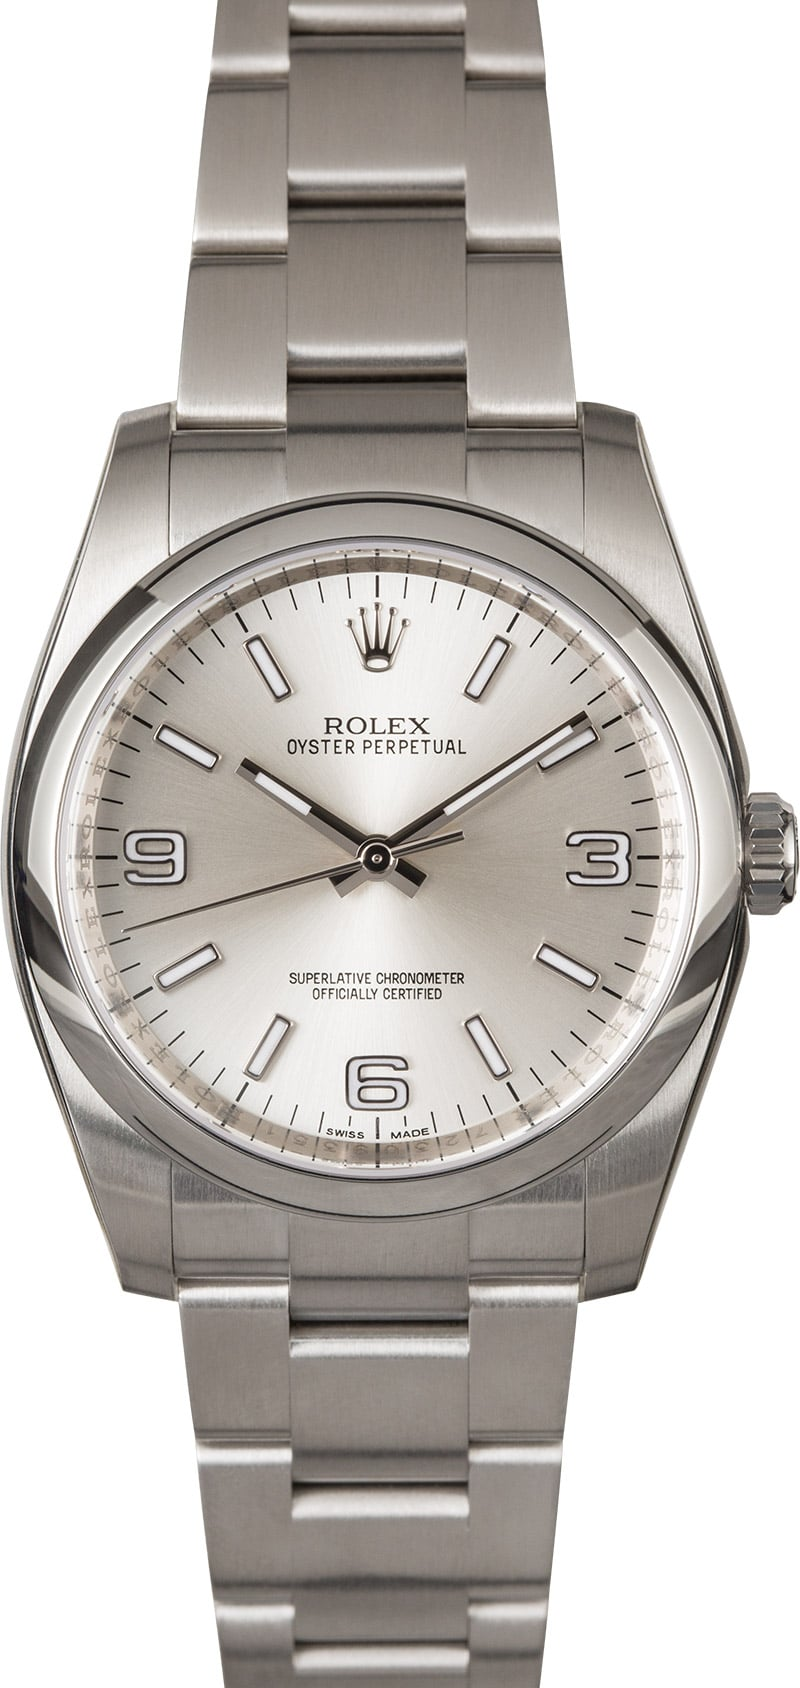 405d8ce6f61 Here are similar in stock watches you might like. Used Rolex Datejust 16233  Black Dial$4,995